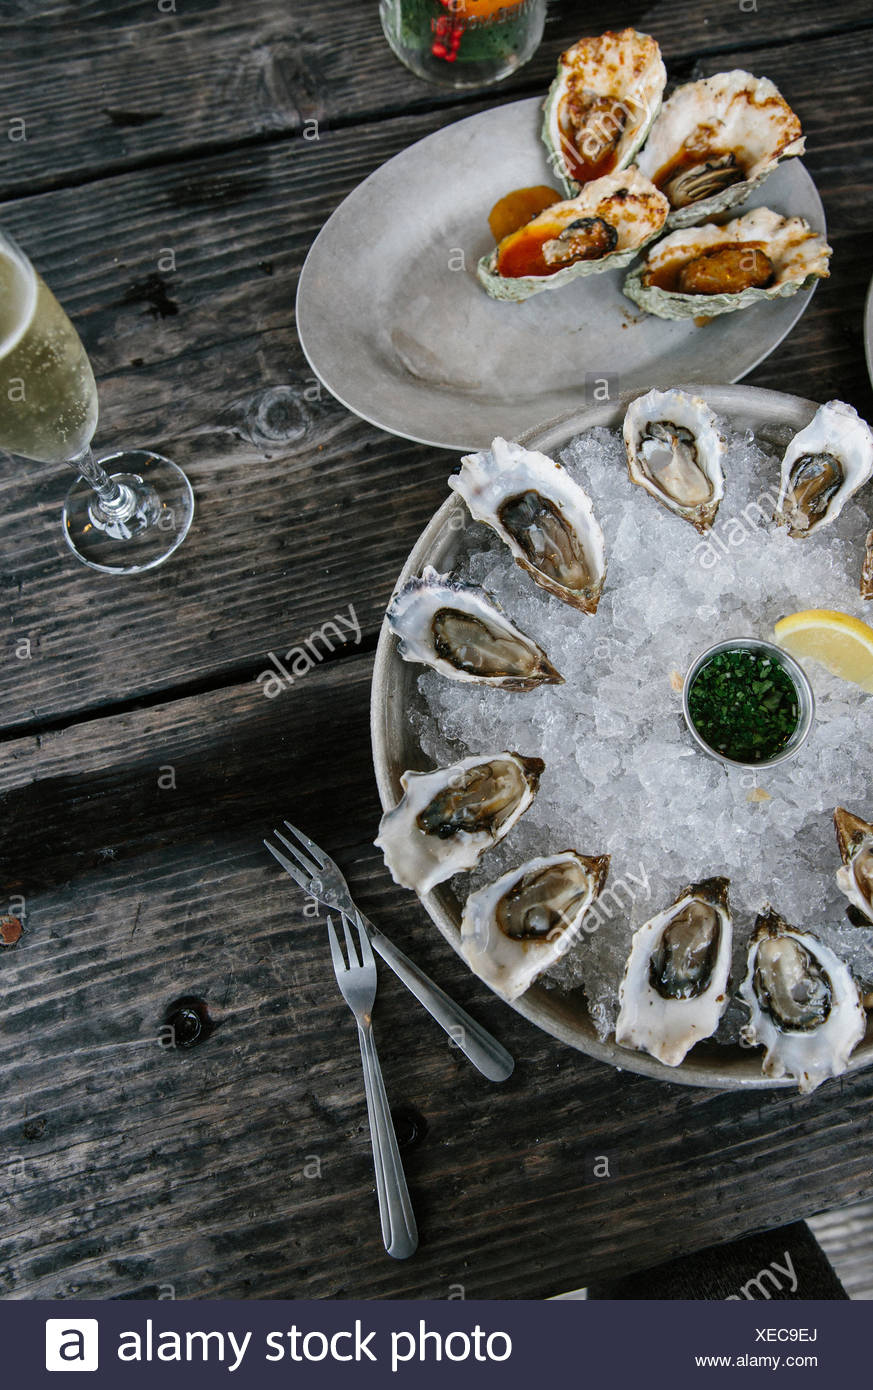 Oysters, Tomales Bay, Marin County, California, USA - Stock Image